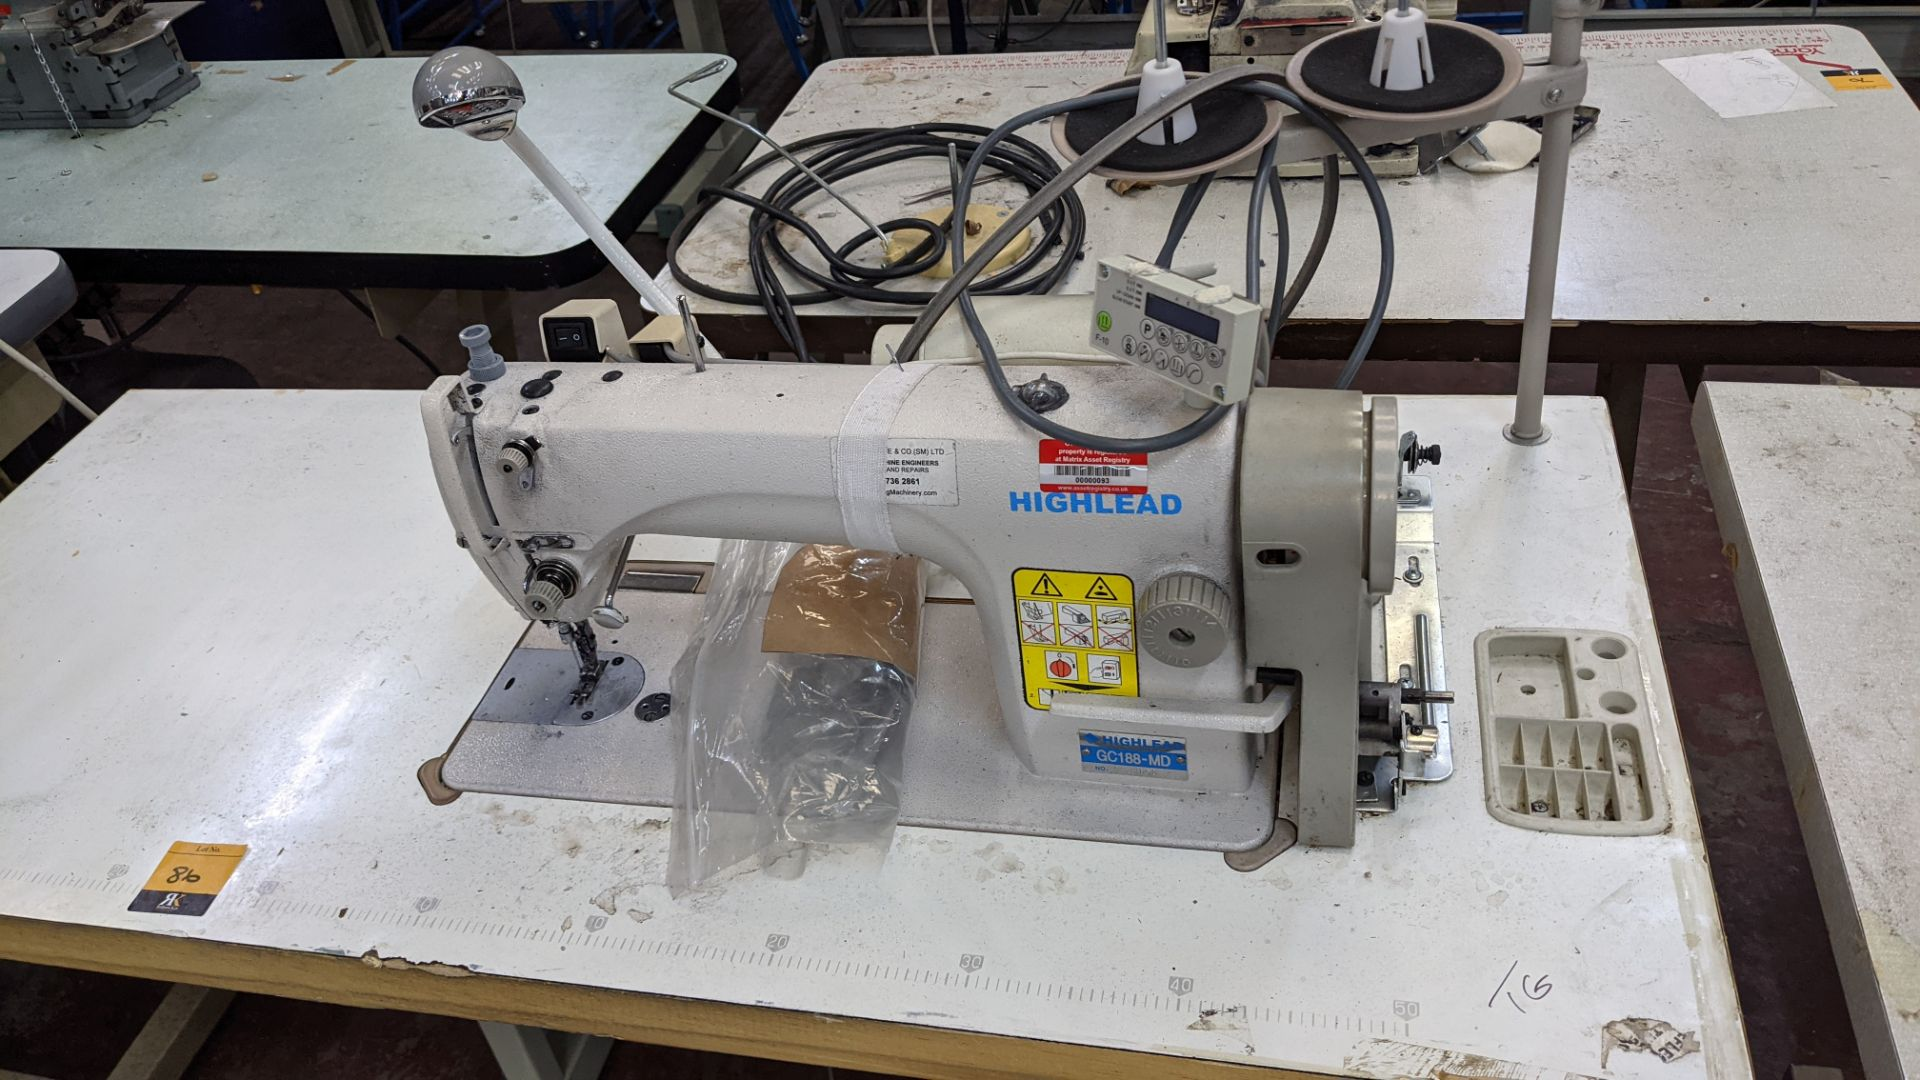 Highlead model GC188-MD sewing machine with model F-10 digital controller - Image 4 of 15